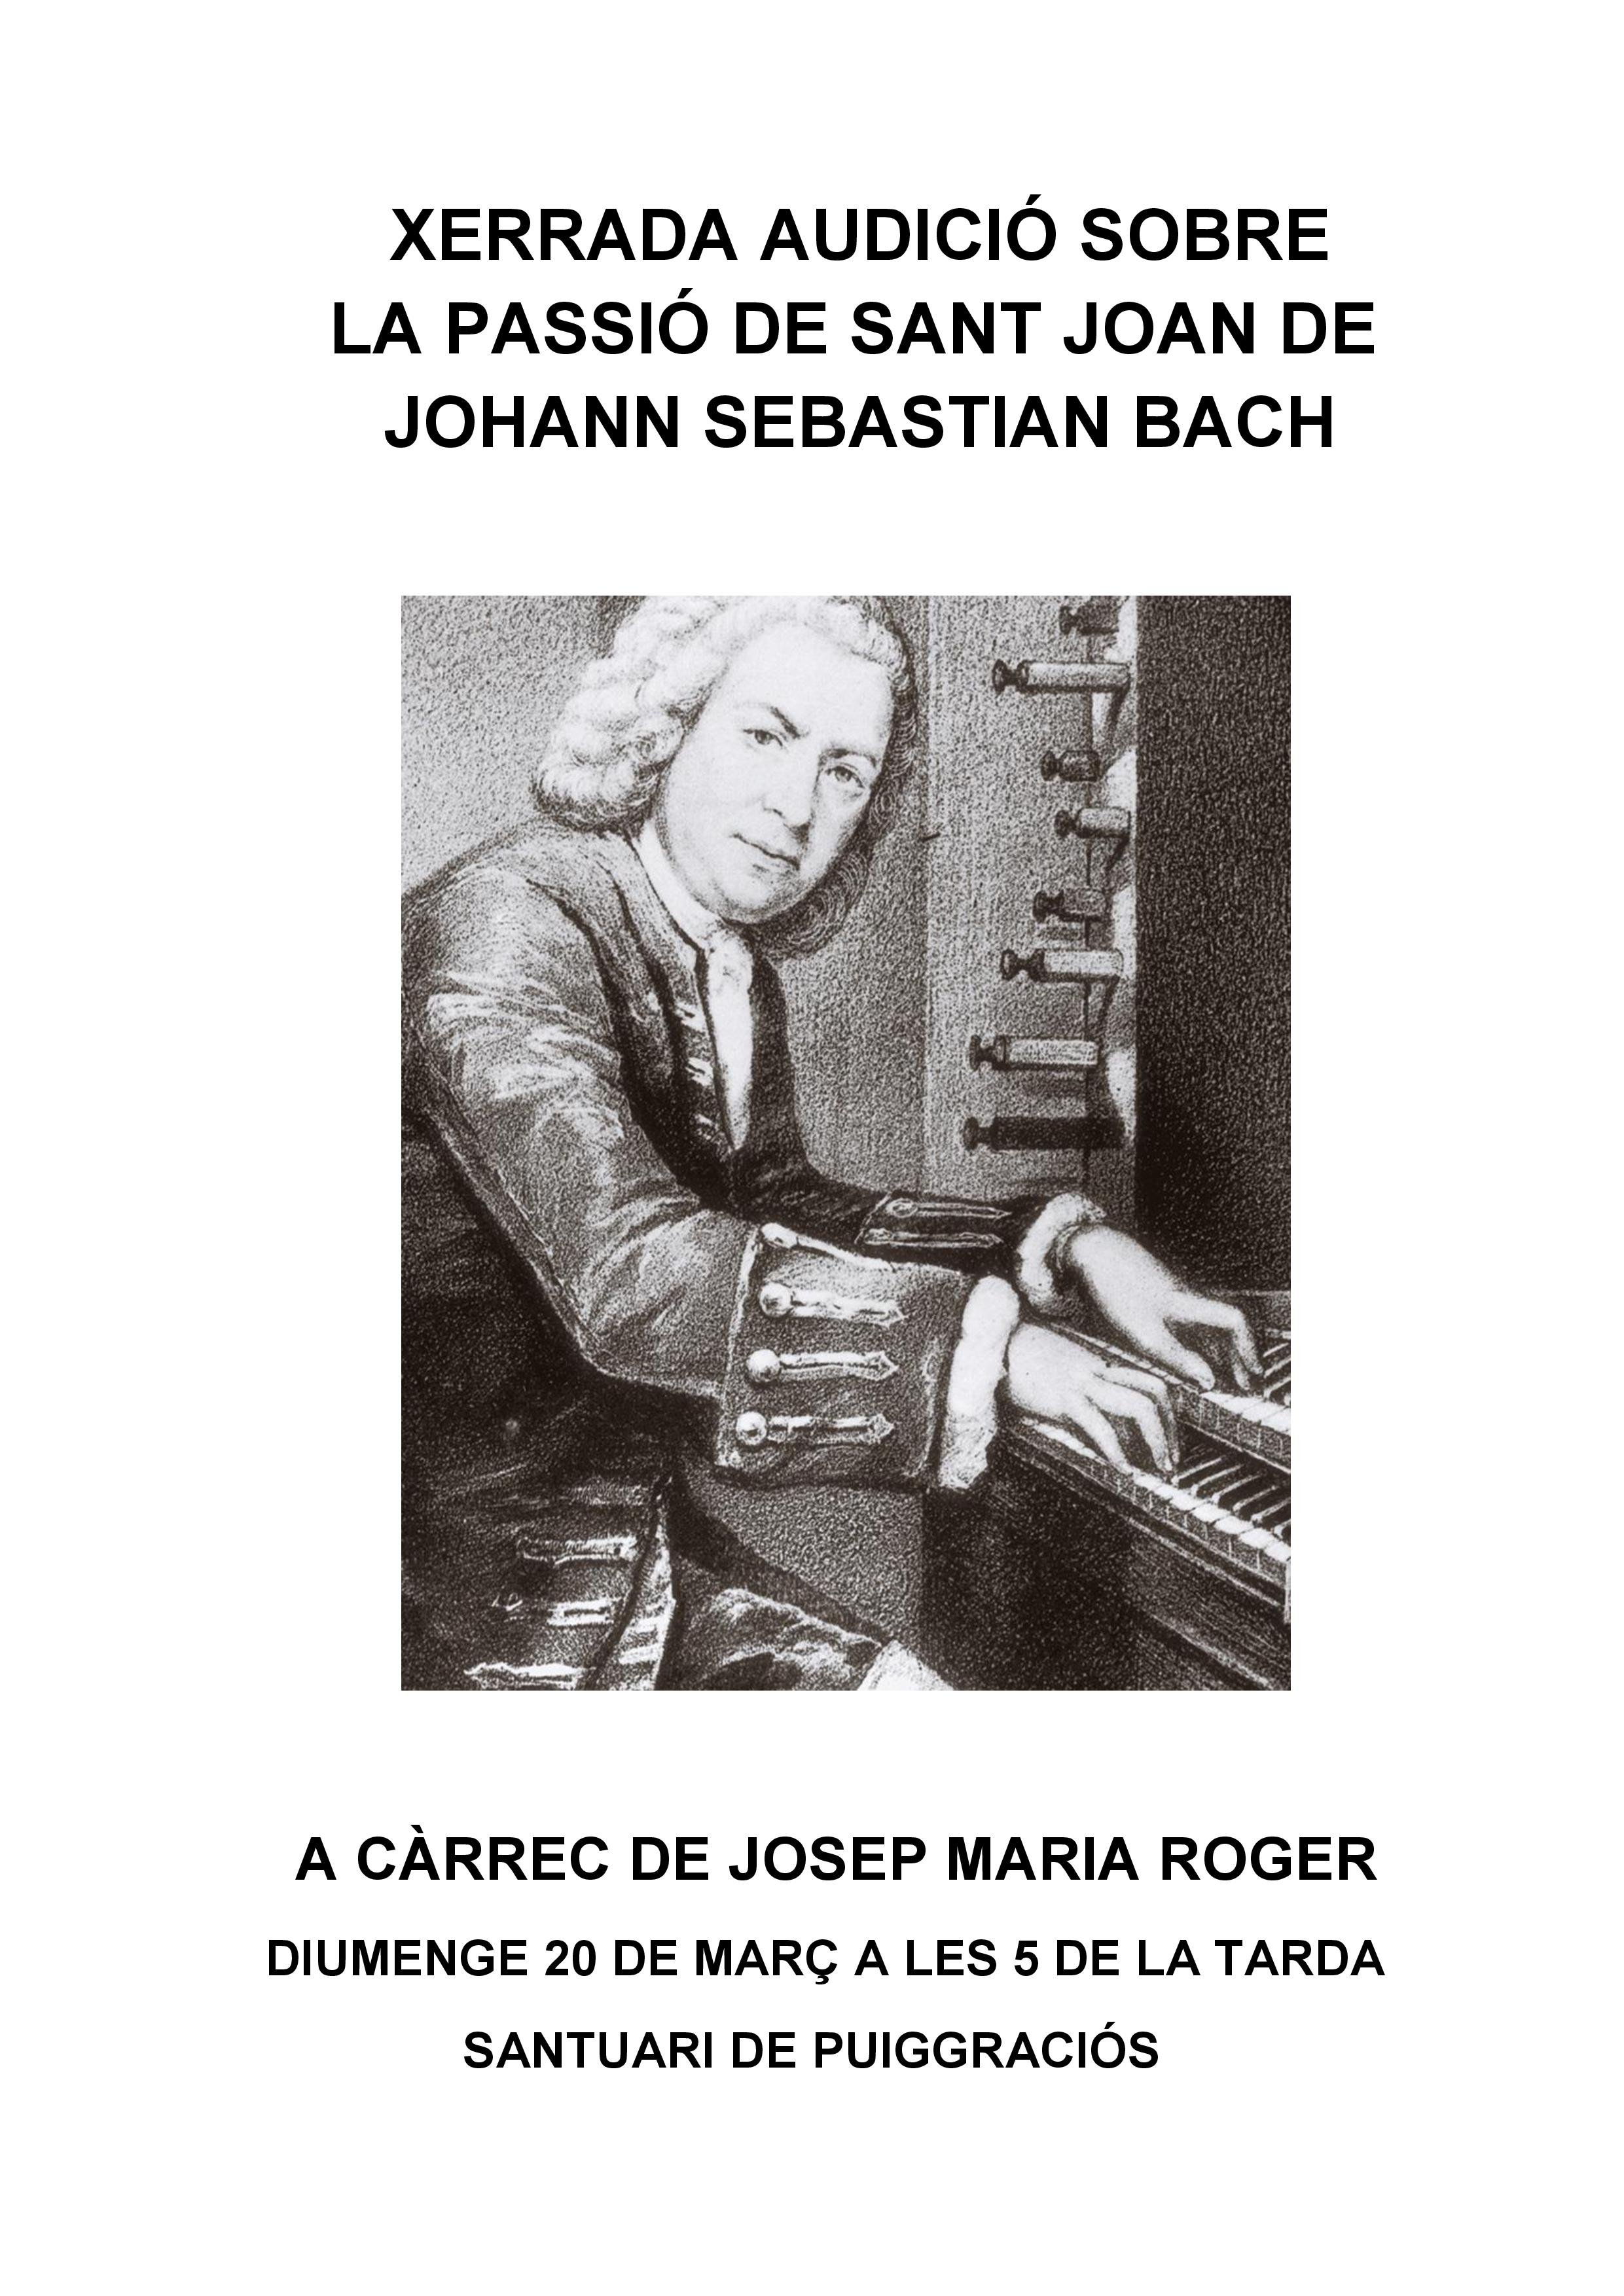 cartell J. S. Bach 20-3-16-page-001